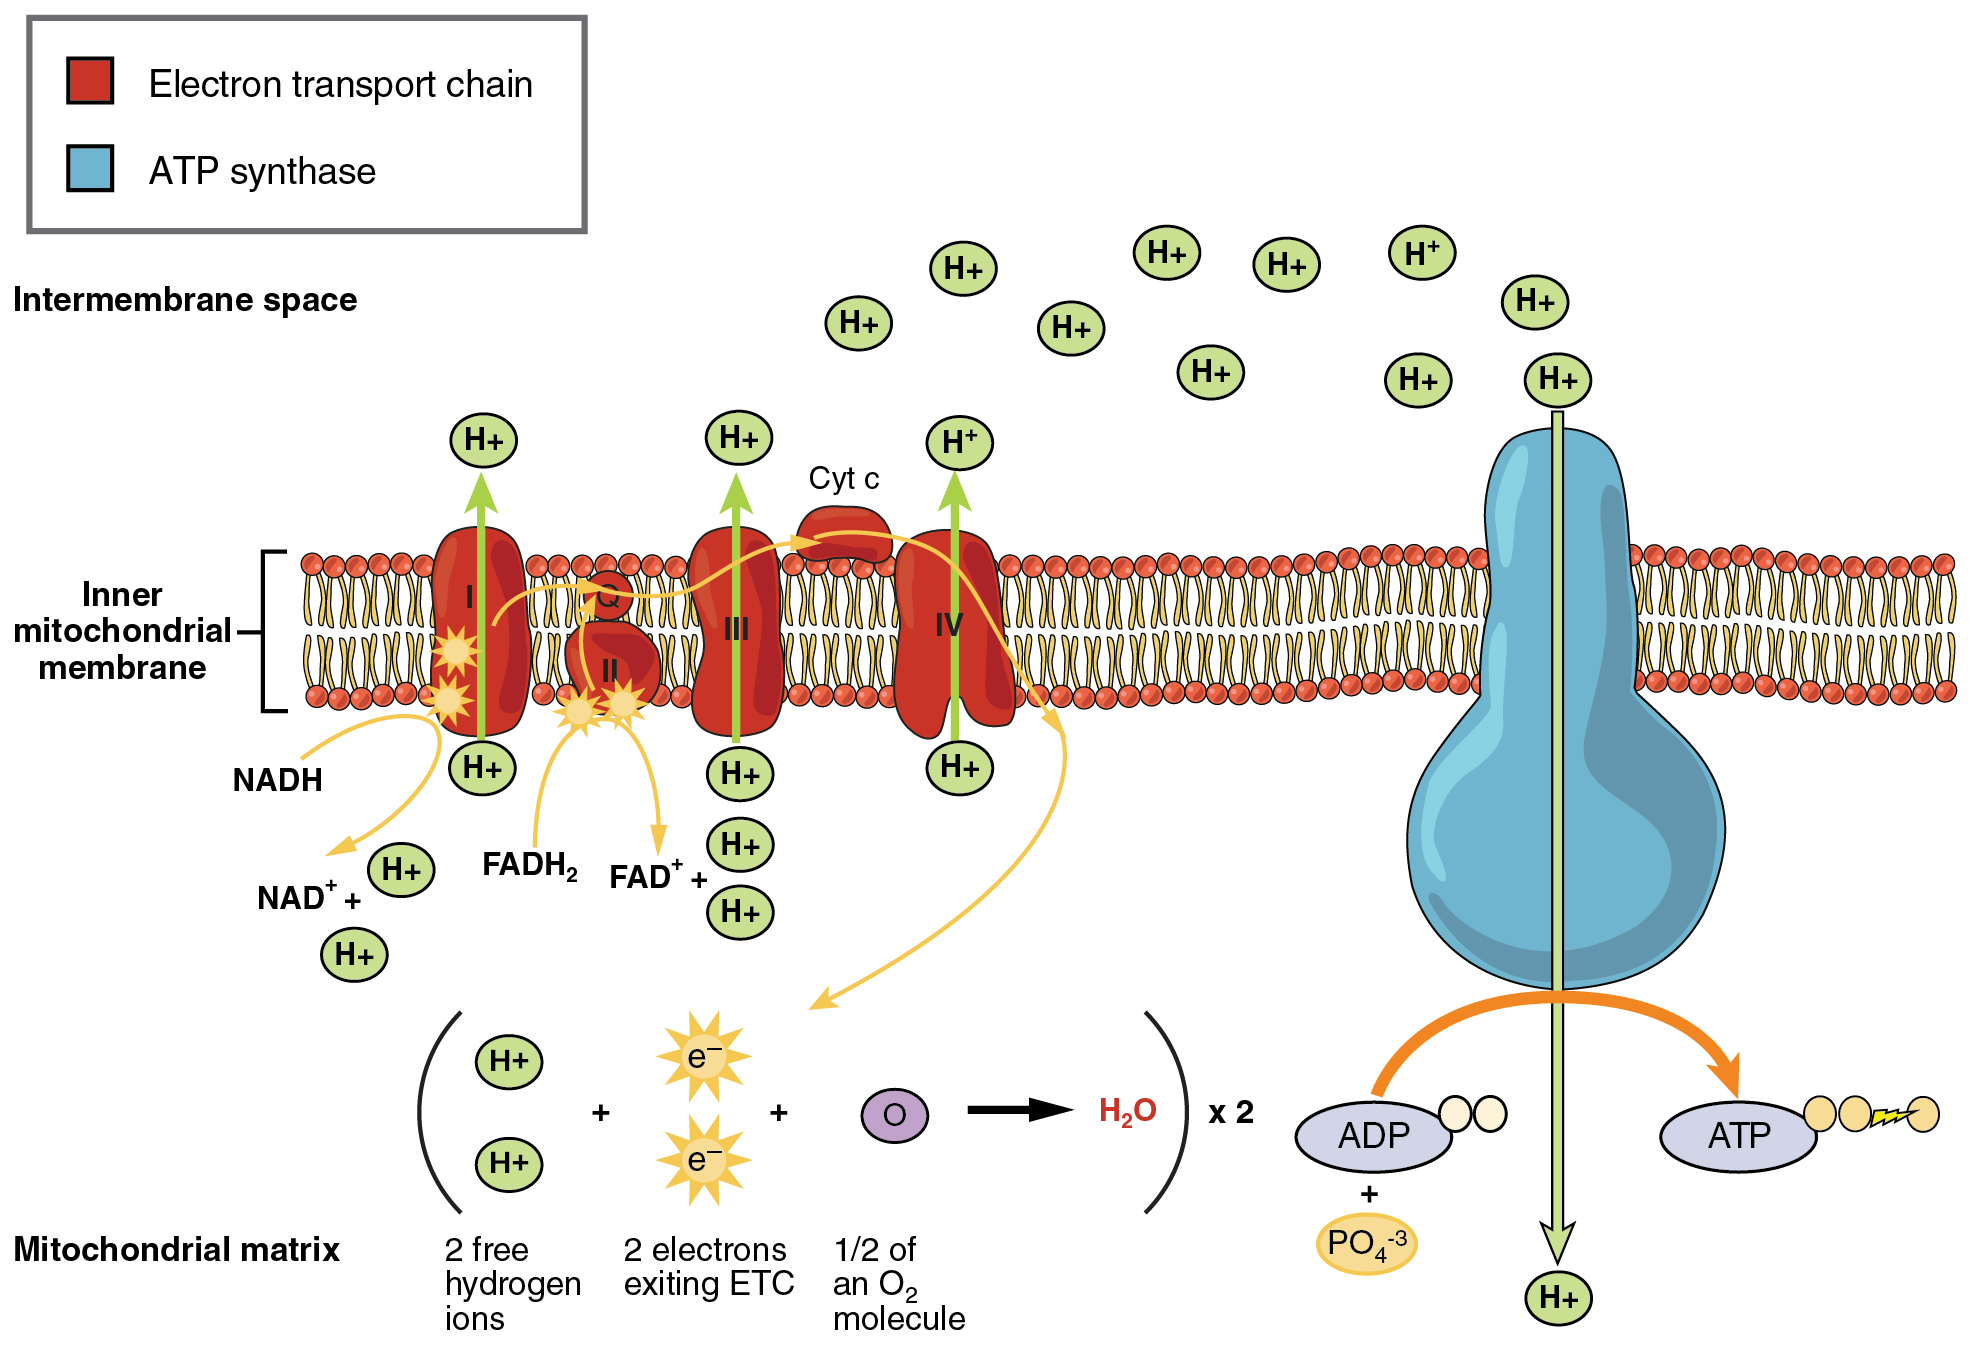 How are mitochondria analogous to hydraulic dams? | eNotes